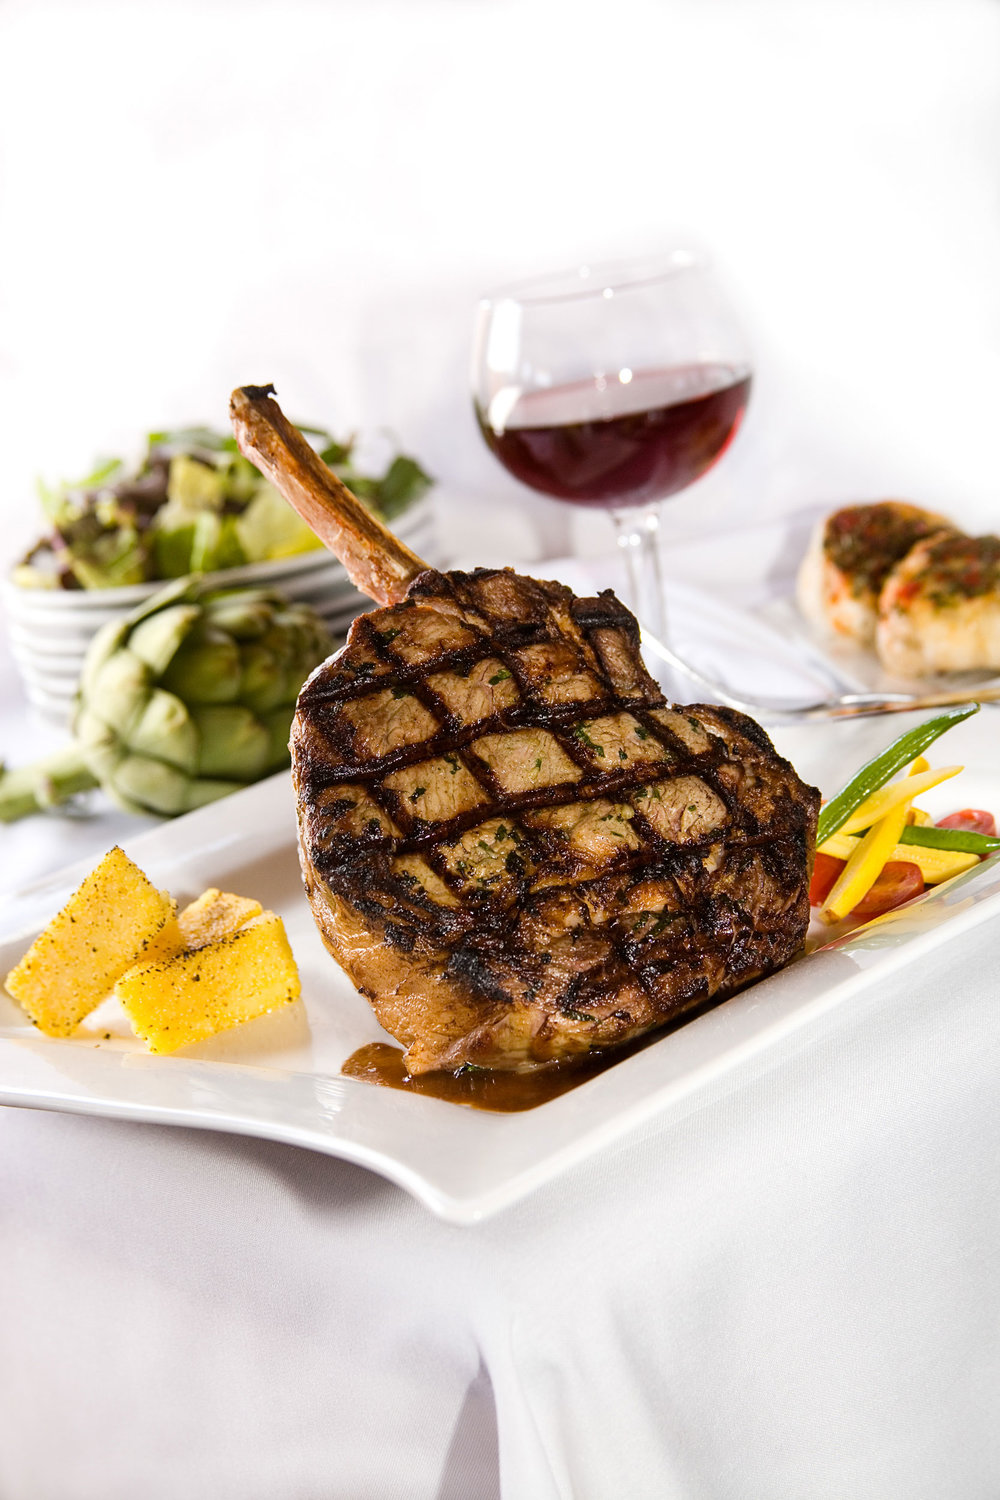 09 Tomahawk-Steak-Fish-Grotto-small.jpg